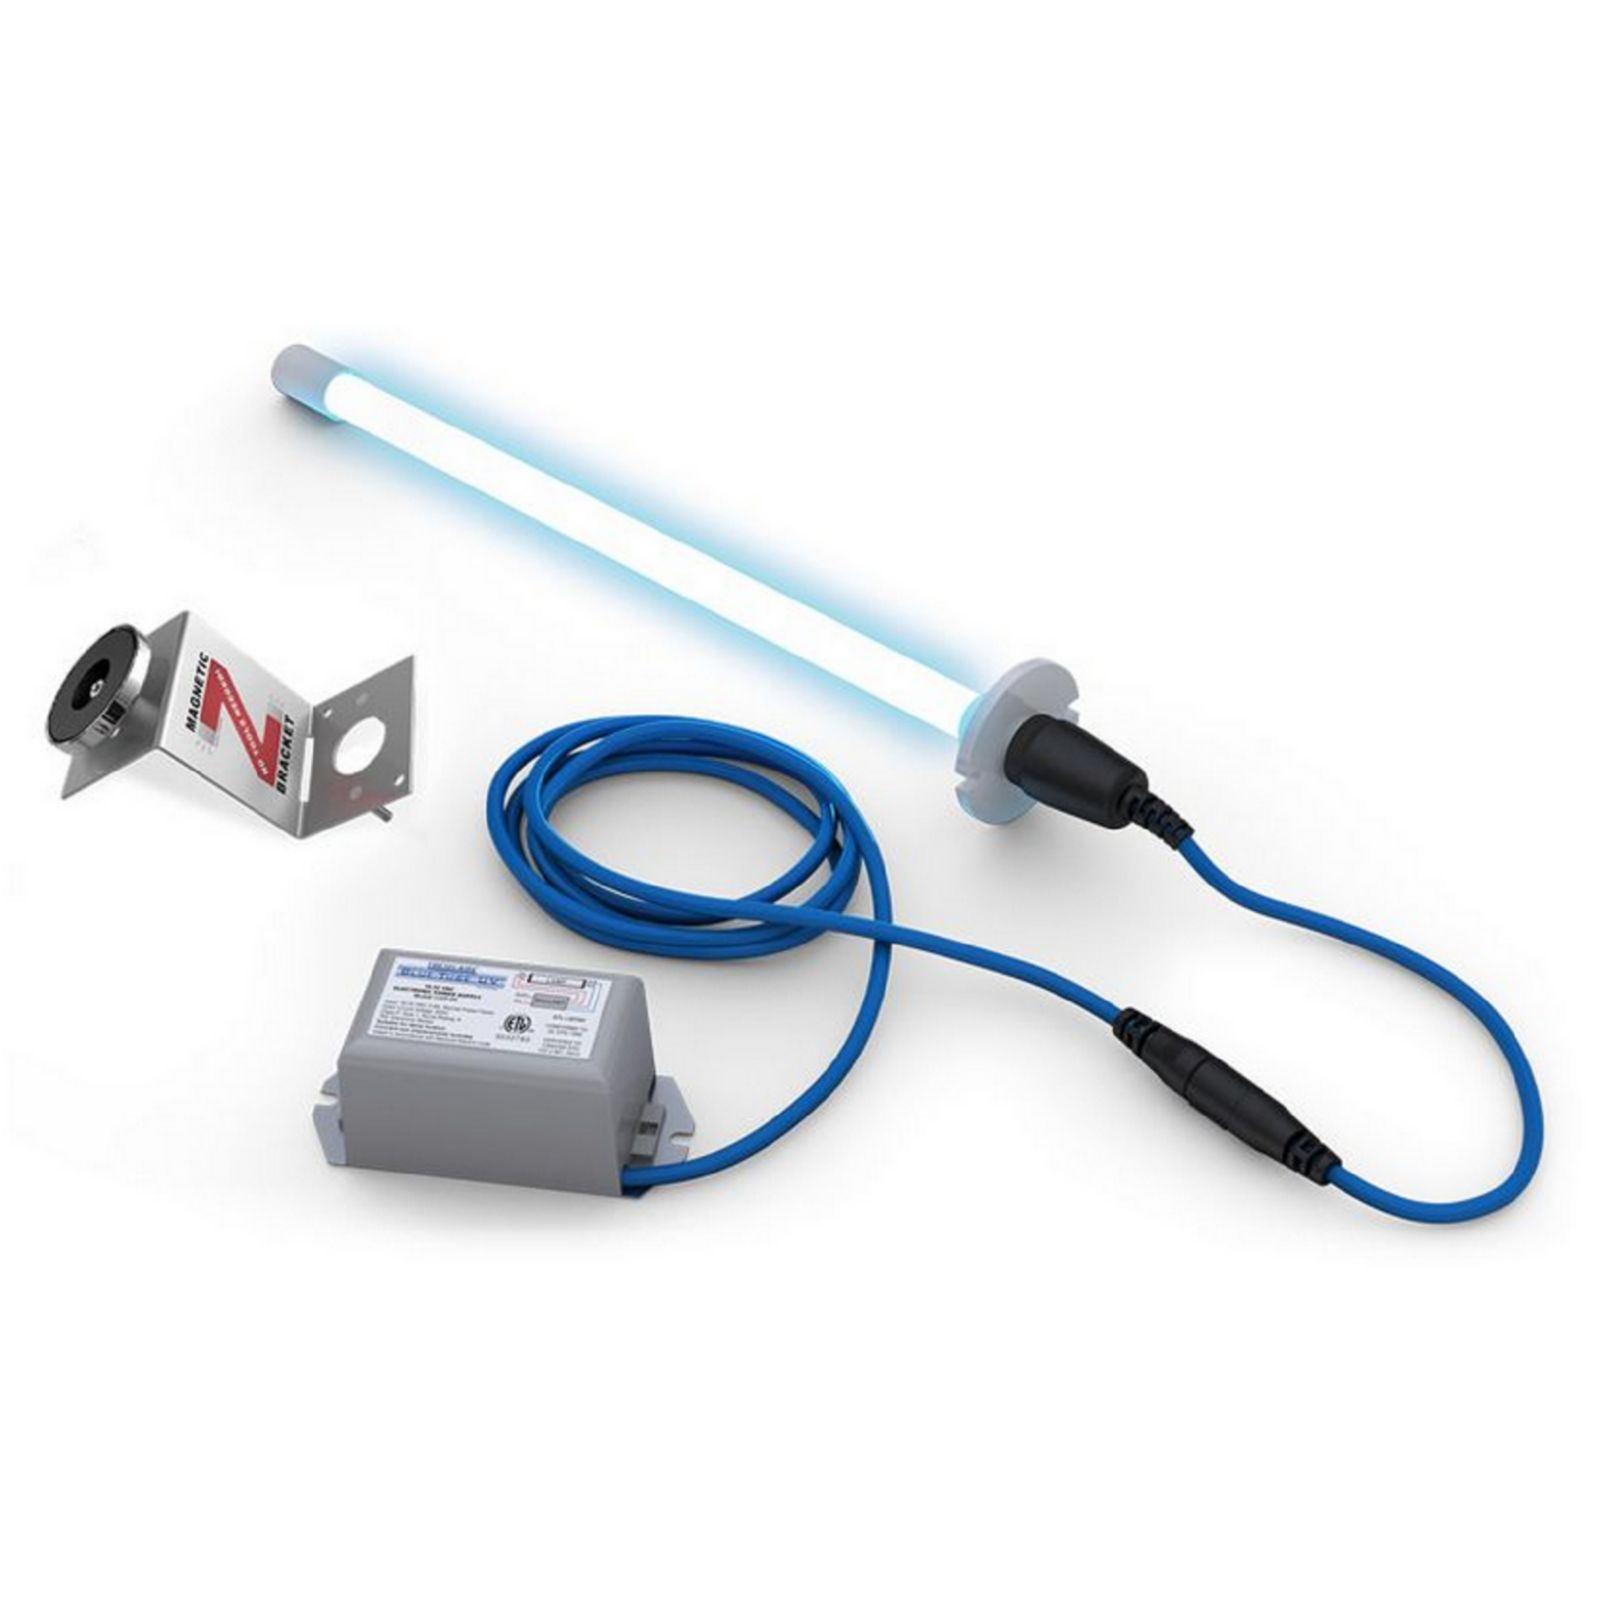 Fresh Aire TUV-BTST - Blue-Tube UV from Fresh-Aire UV, 110-277 VAC power supply and 1 year UV-C lamp.